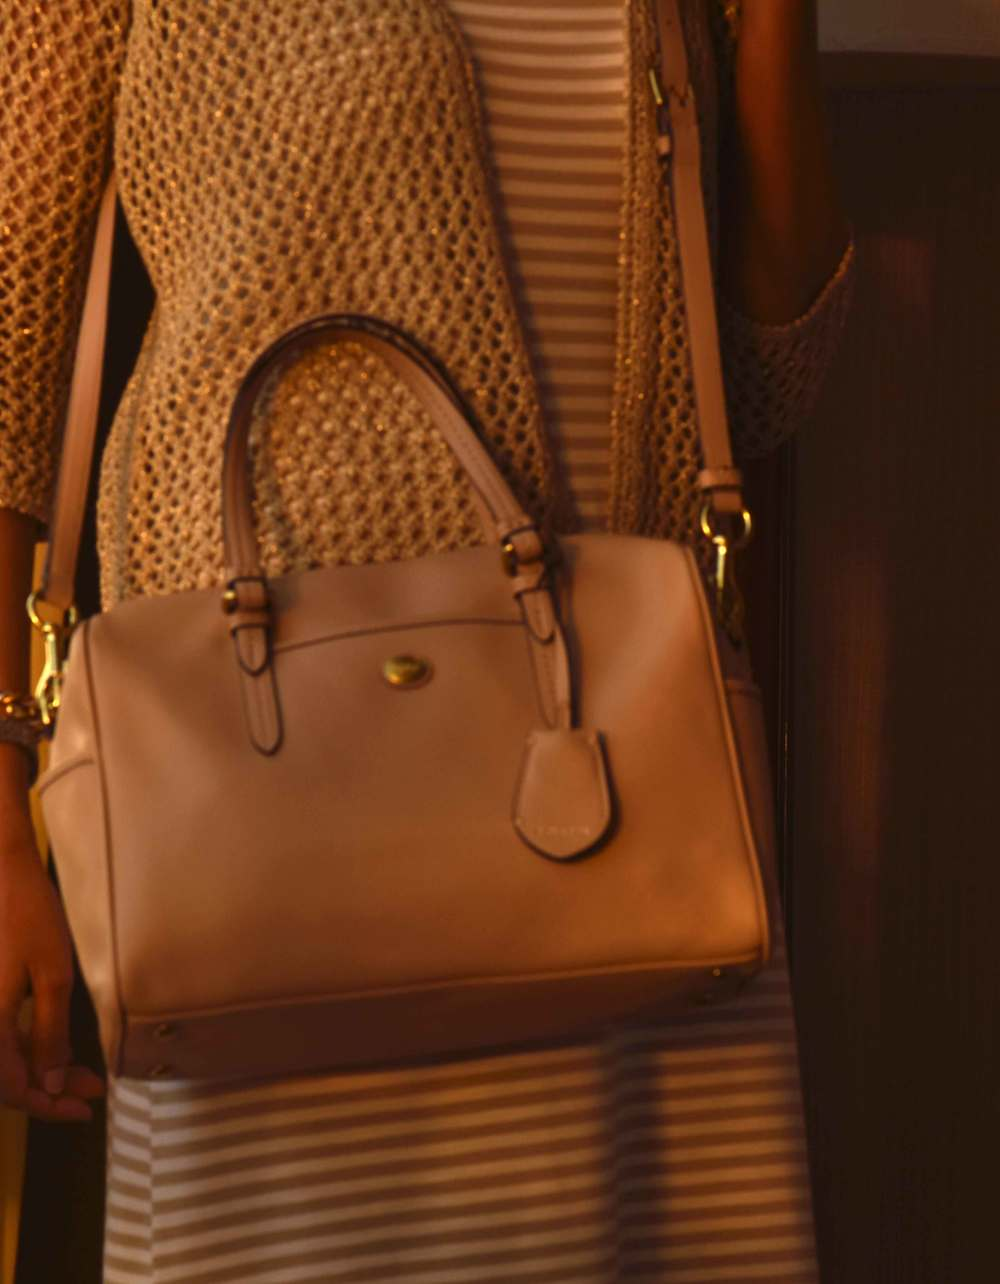 My Chicos striped summer dress, a Chicos bolero jacket, a neutral color Coach bag. Image©sourcingstyle.com